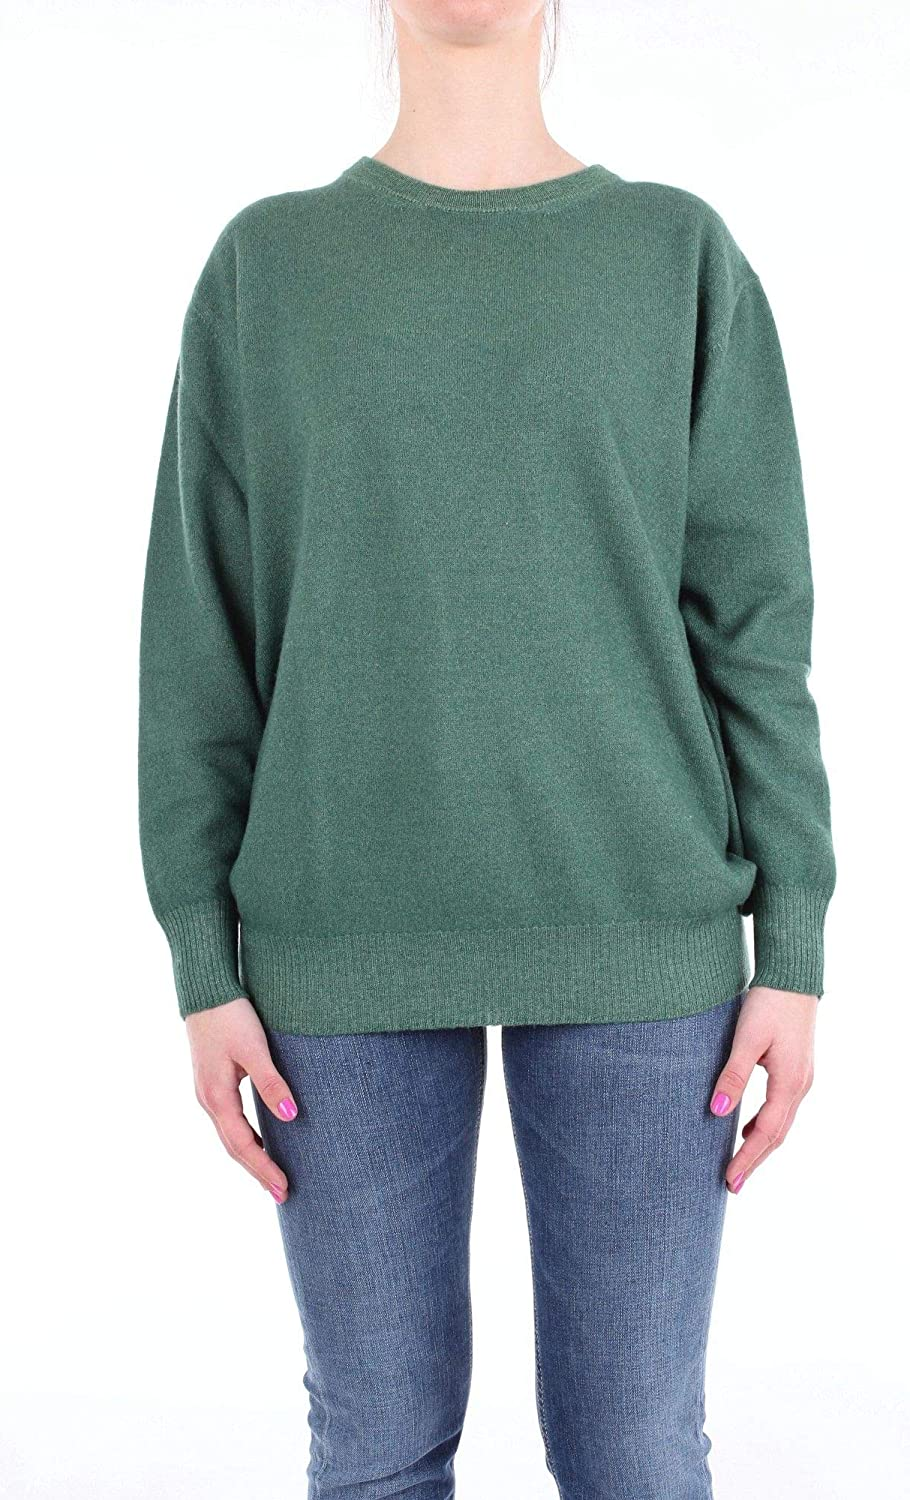 Altea Women's 1861500GREEN Green Cotton Sweater